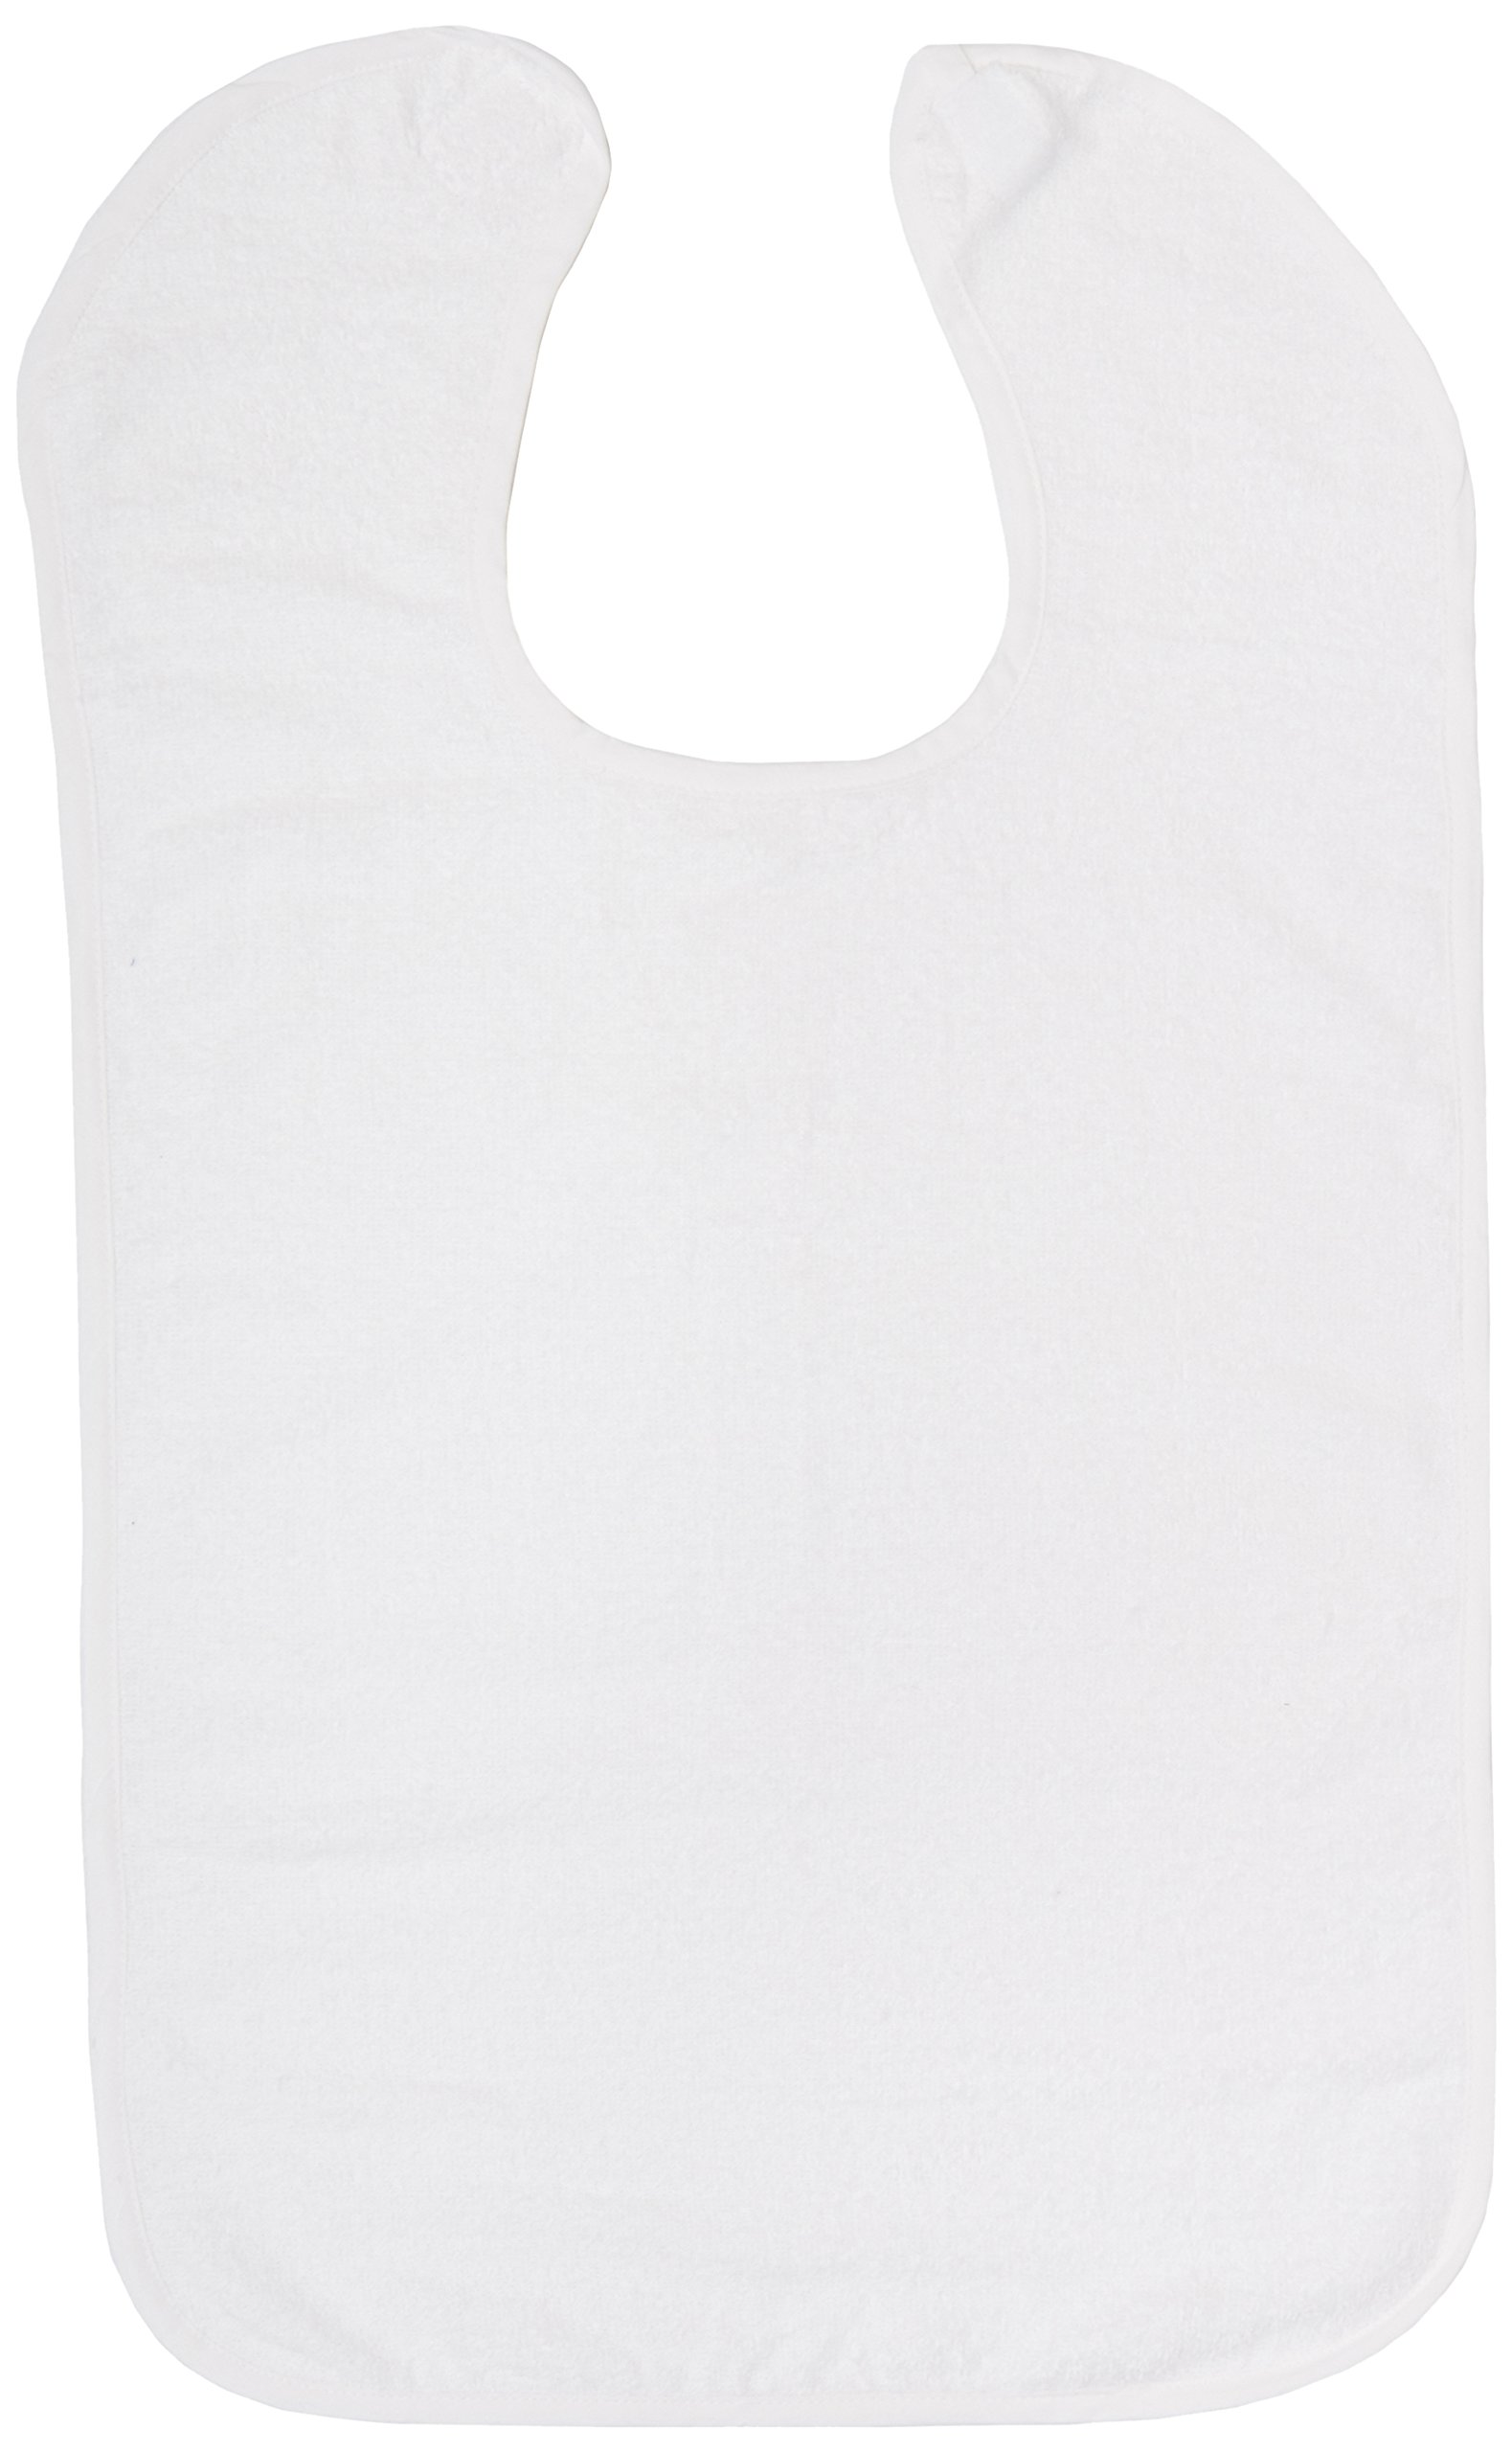 Sammons Preston Terry-Cloth Food Catcher, Pack of 3, White Jumbo Bib,16''W x 25''L, Lightweight Adult Bib Keeps Clothes Clean for Elderly, Disabled, and Messy Eaters, Velcro Strap Secures Bib On